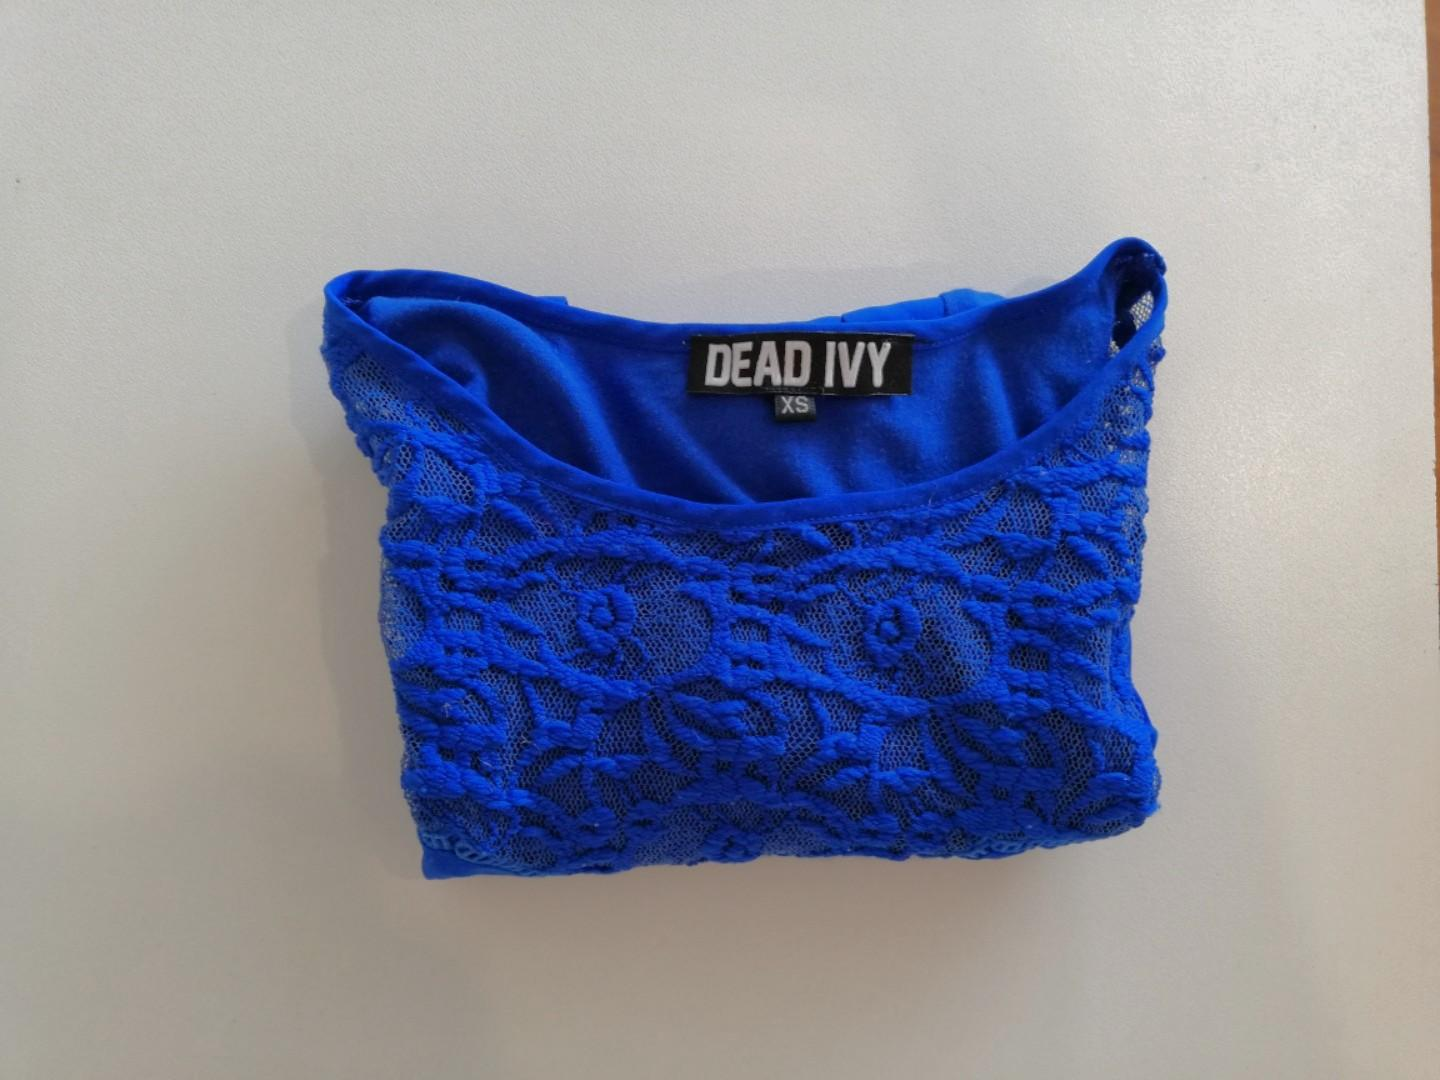 XS - Dead Ivy - Dark Blue Tee w Scoop Neck and Lace Detail